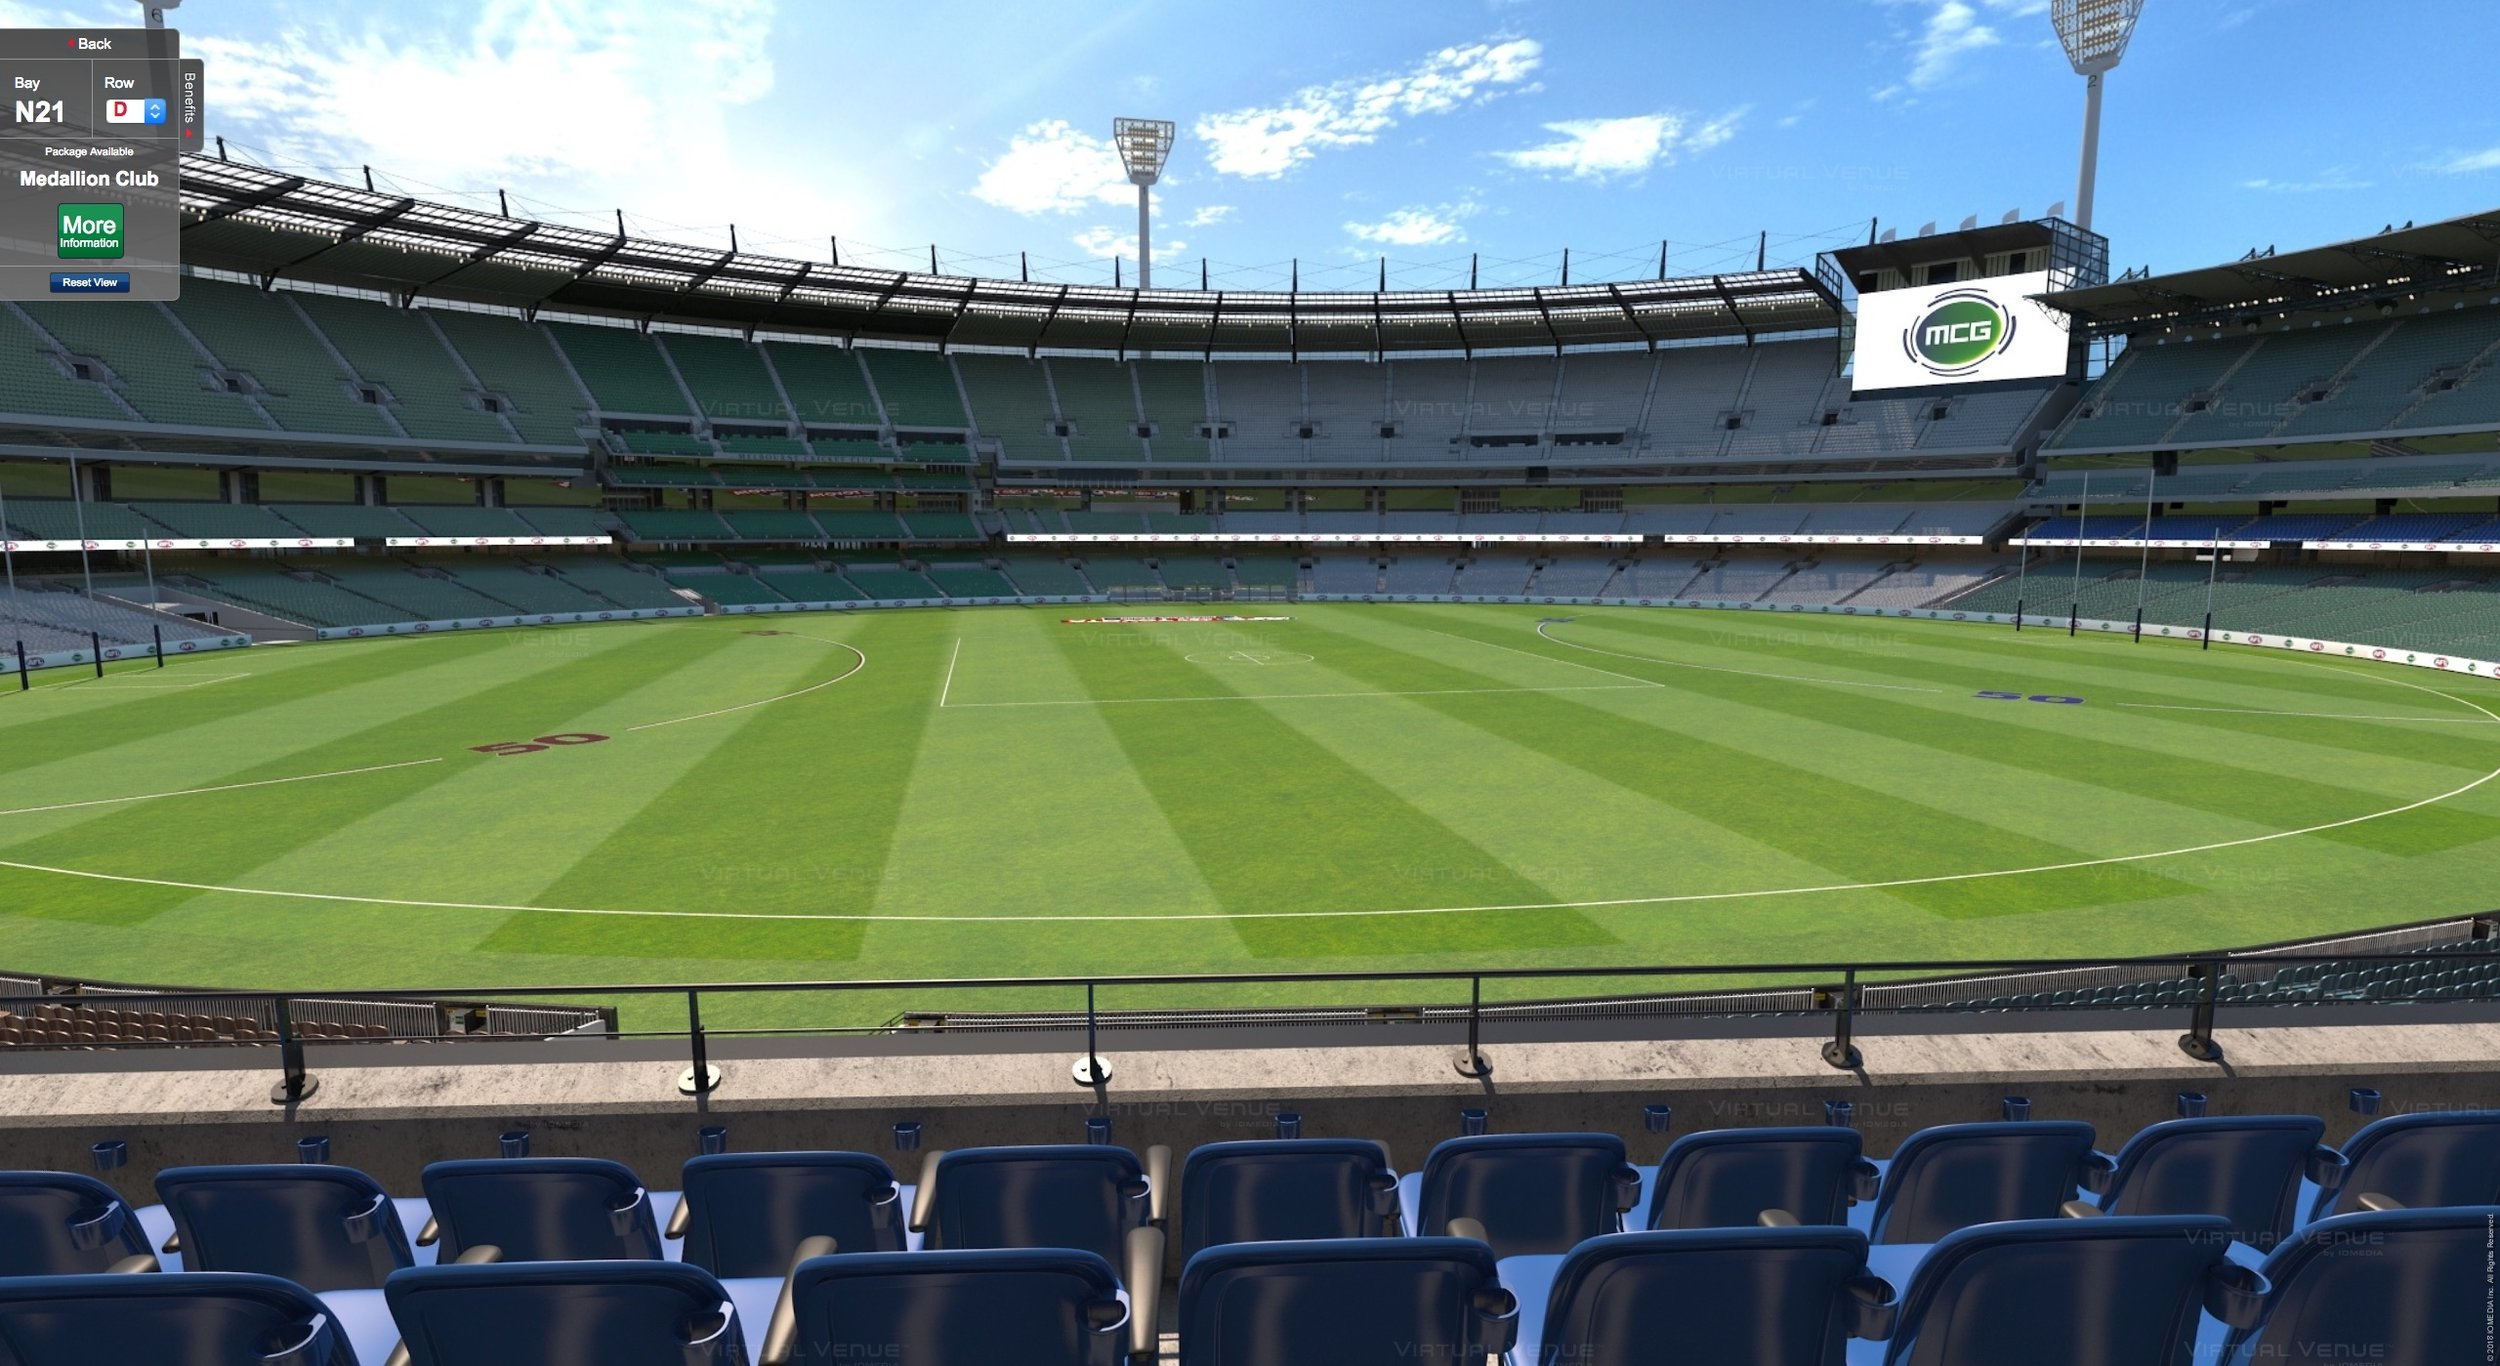 Essendon v Sydney Swans MCG Medallion Club seating